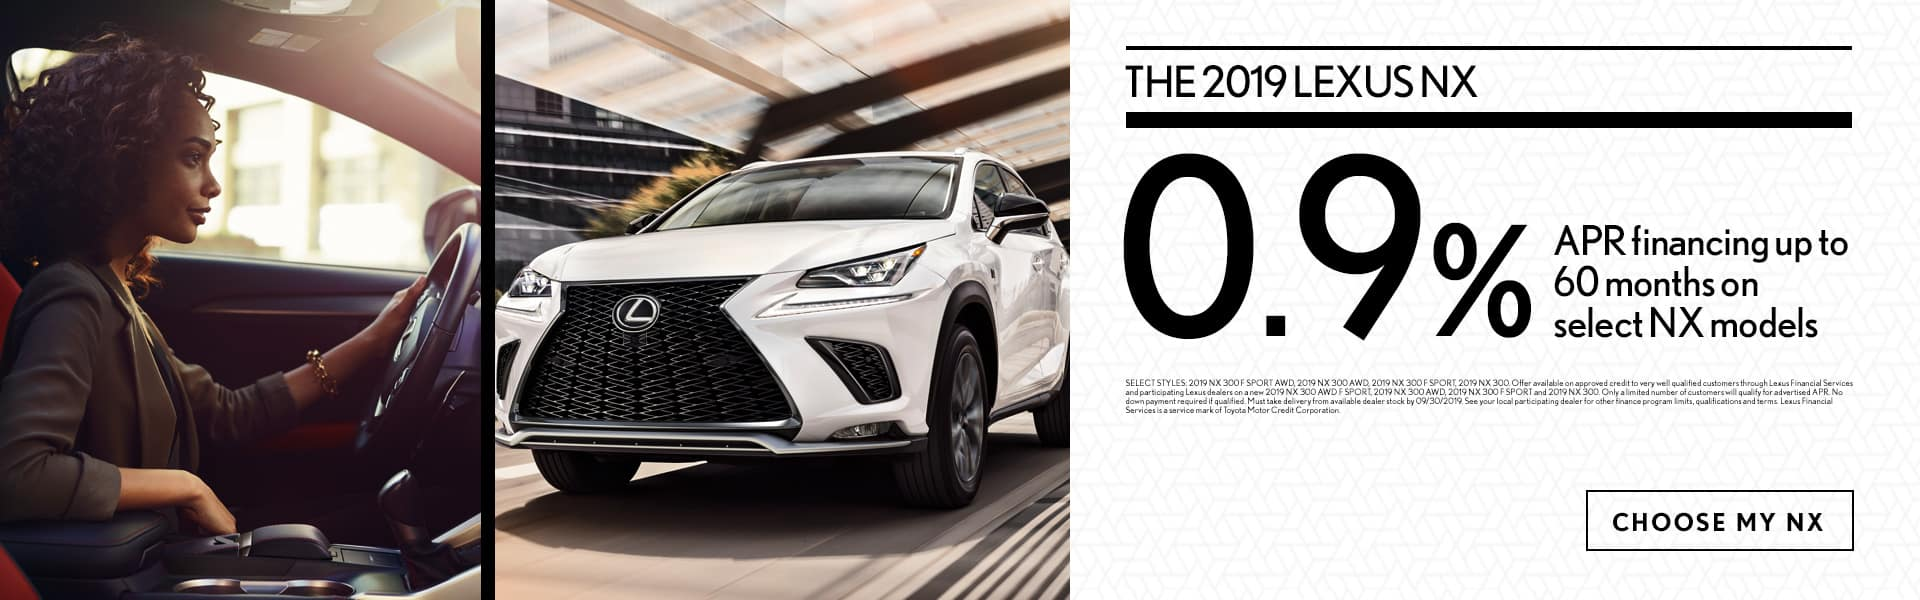 The 2019 Lexus NX - 0.9 percent financing for up to 60 months on select models - Choose my NX